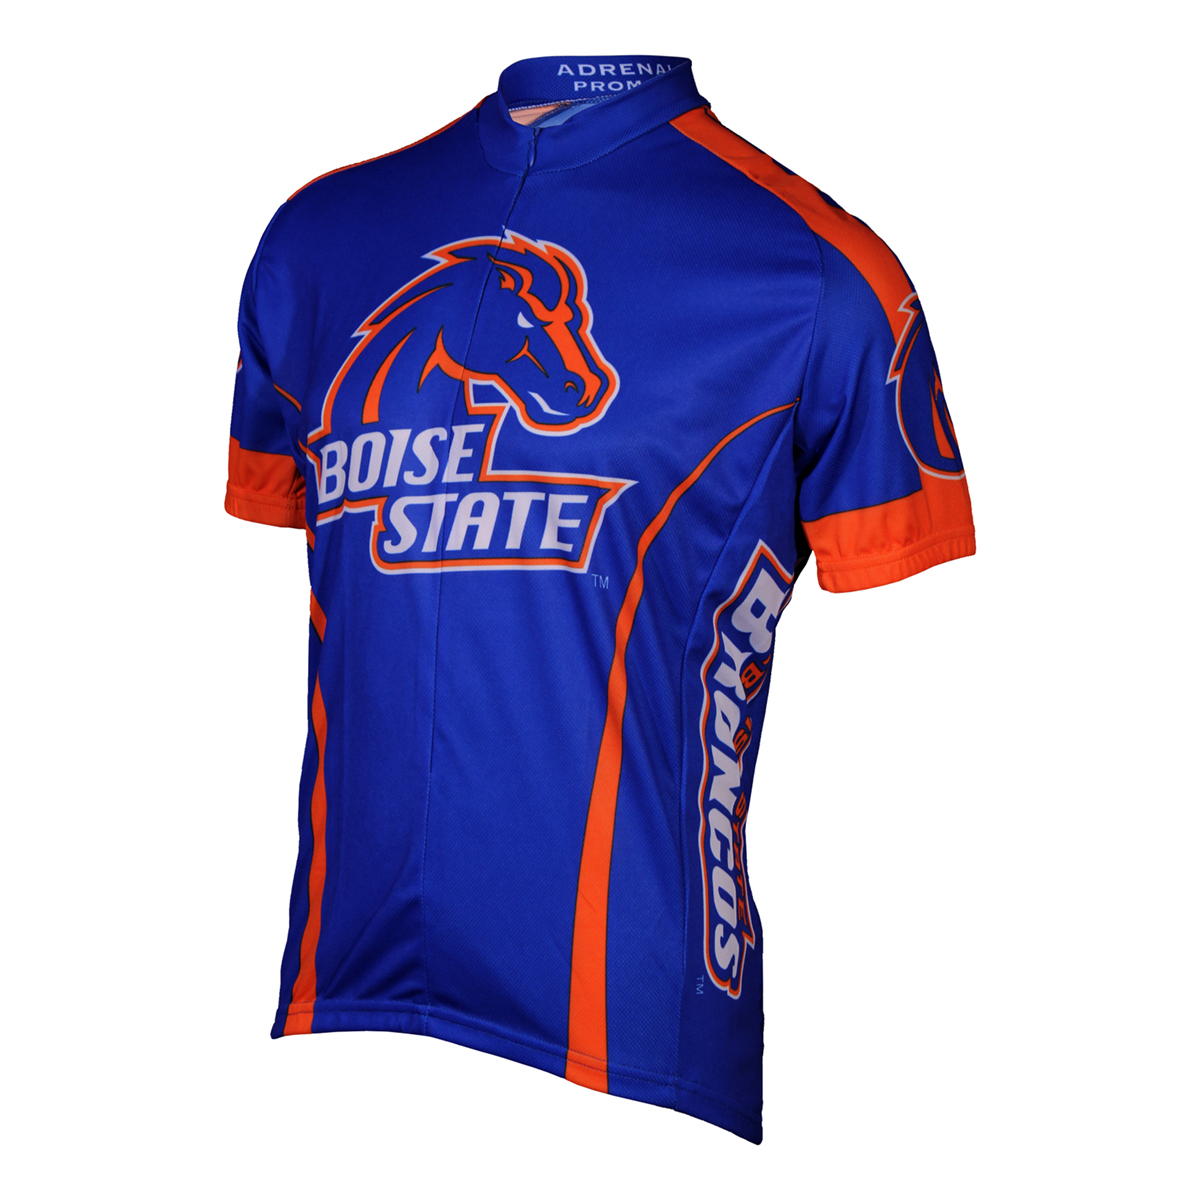 Image of Adrenaline Promotions Boise State University Broncos Cycling Jersey